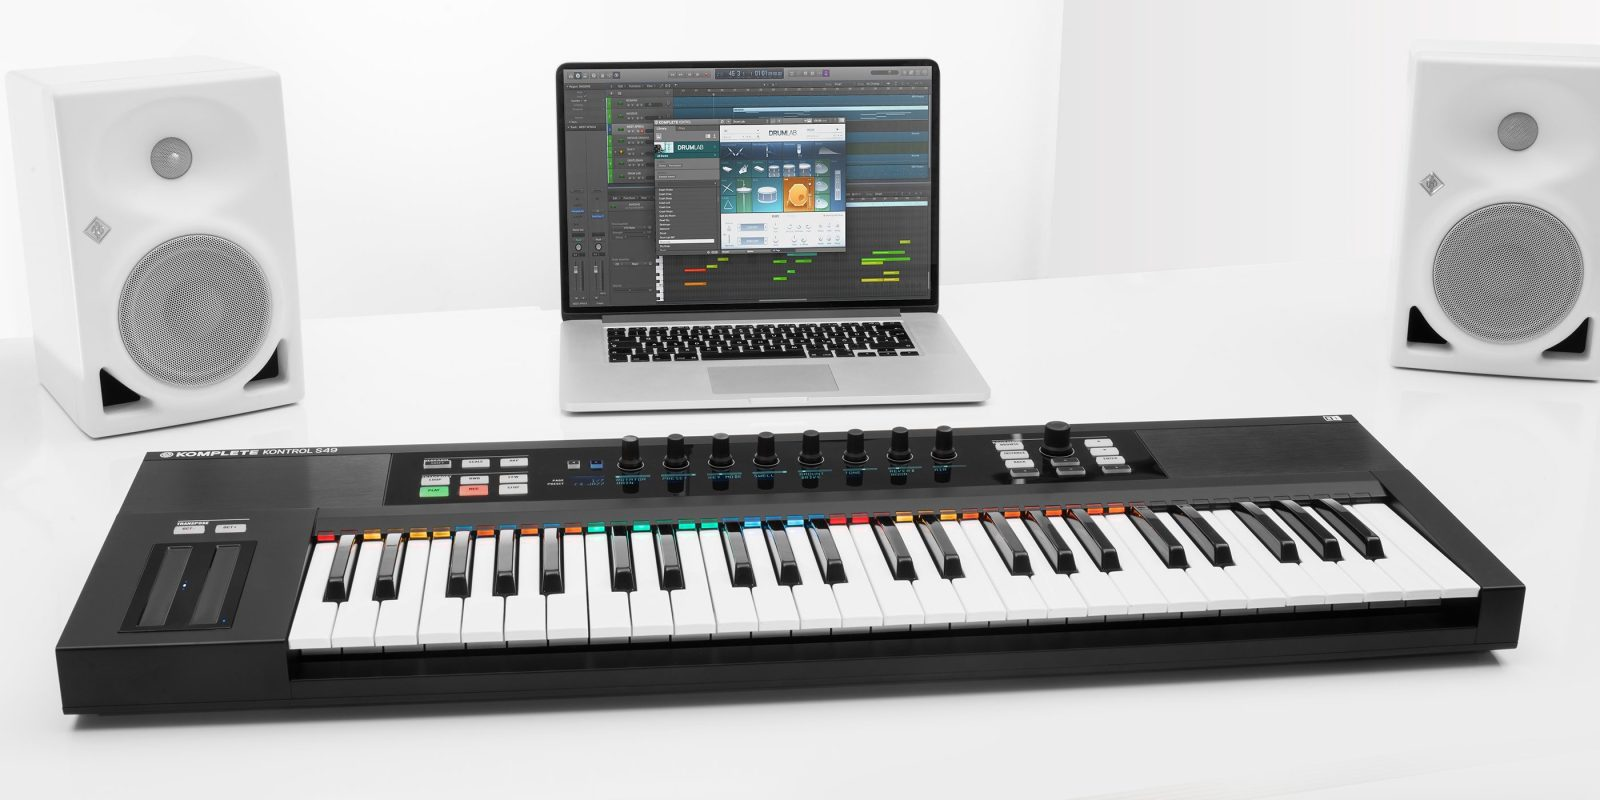 The best MIDI keyboards for Mac and Logic Pro - 9to5Mac